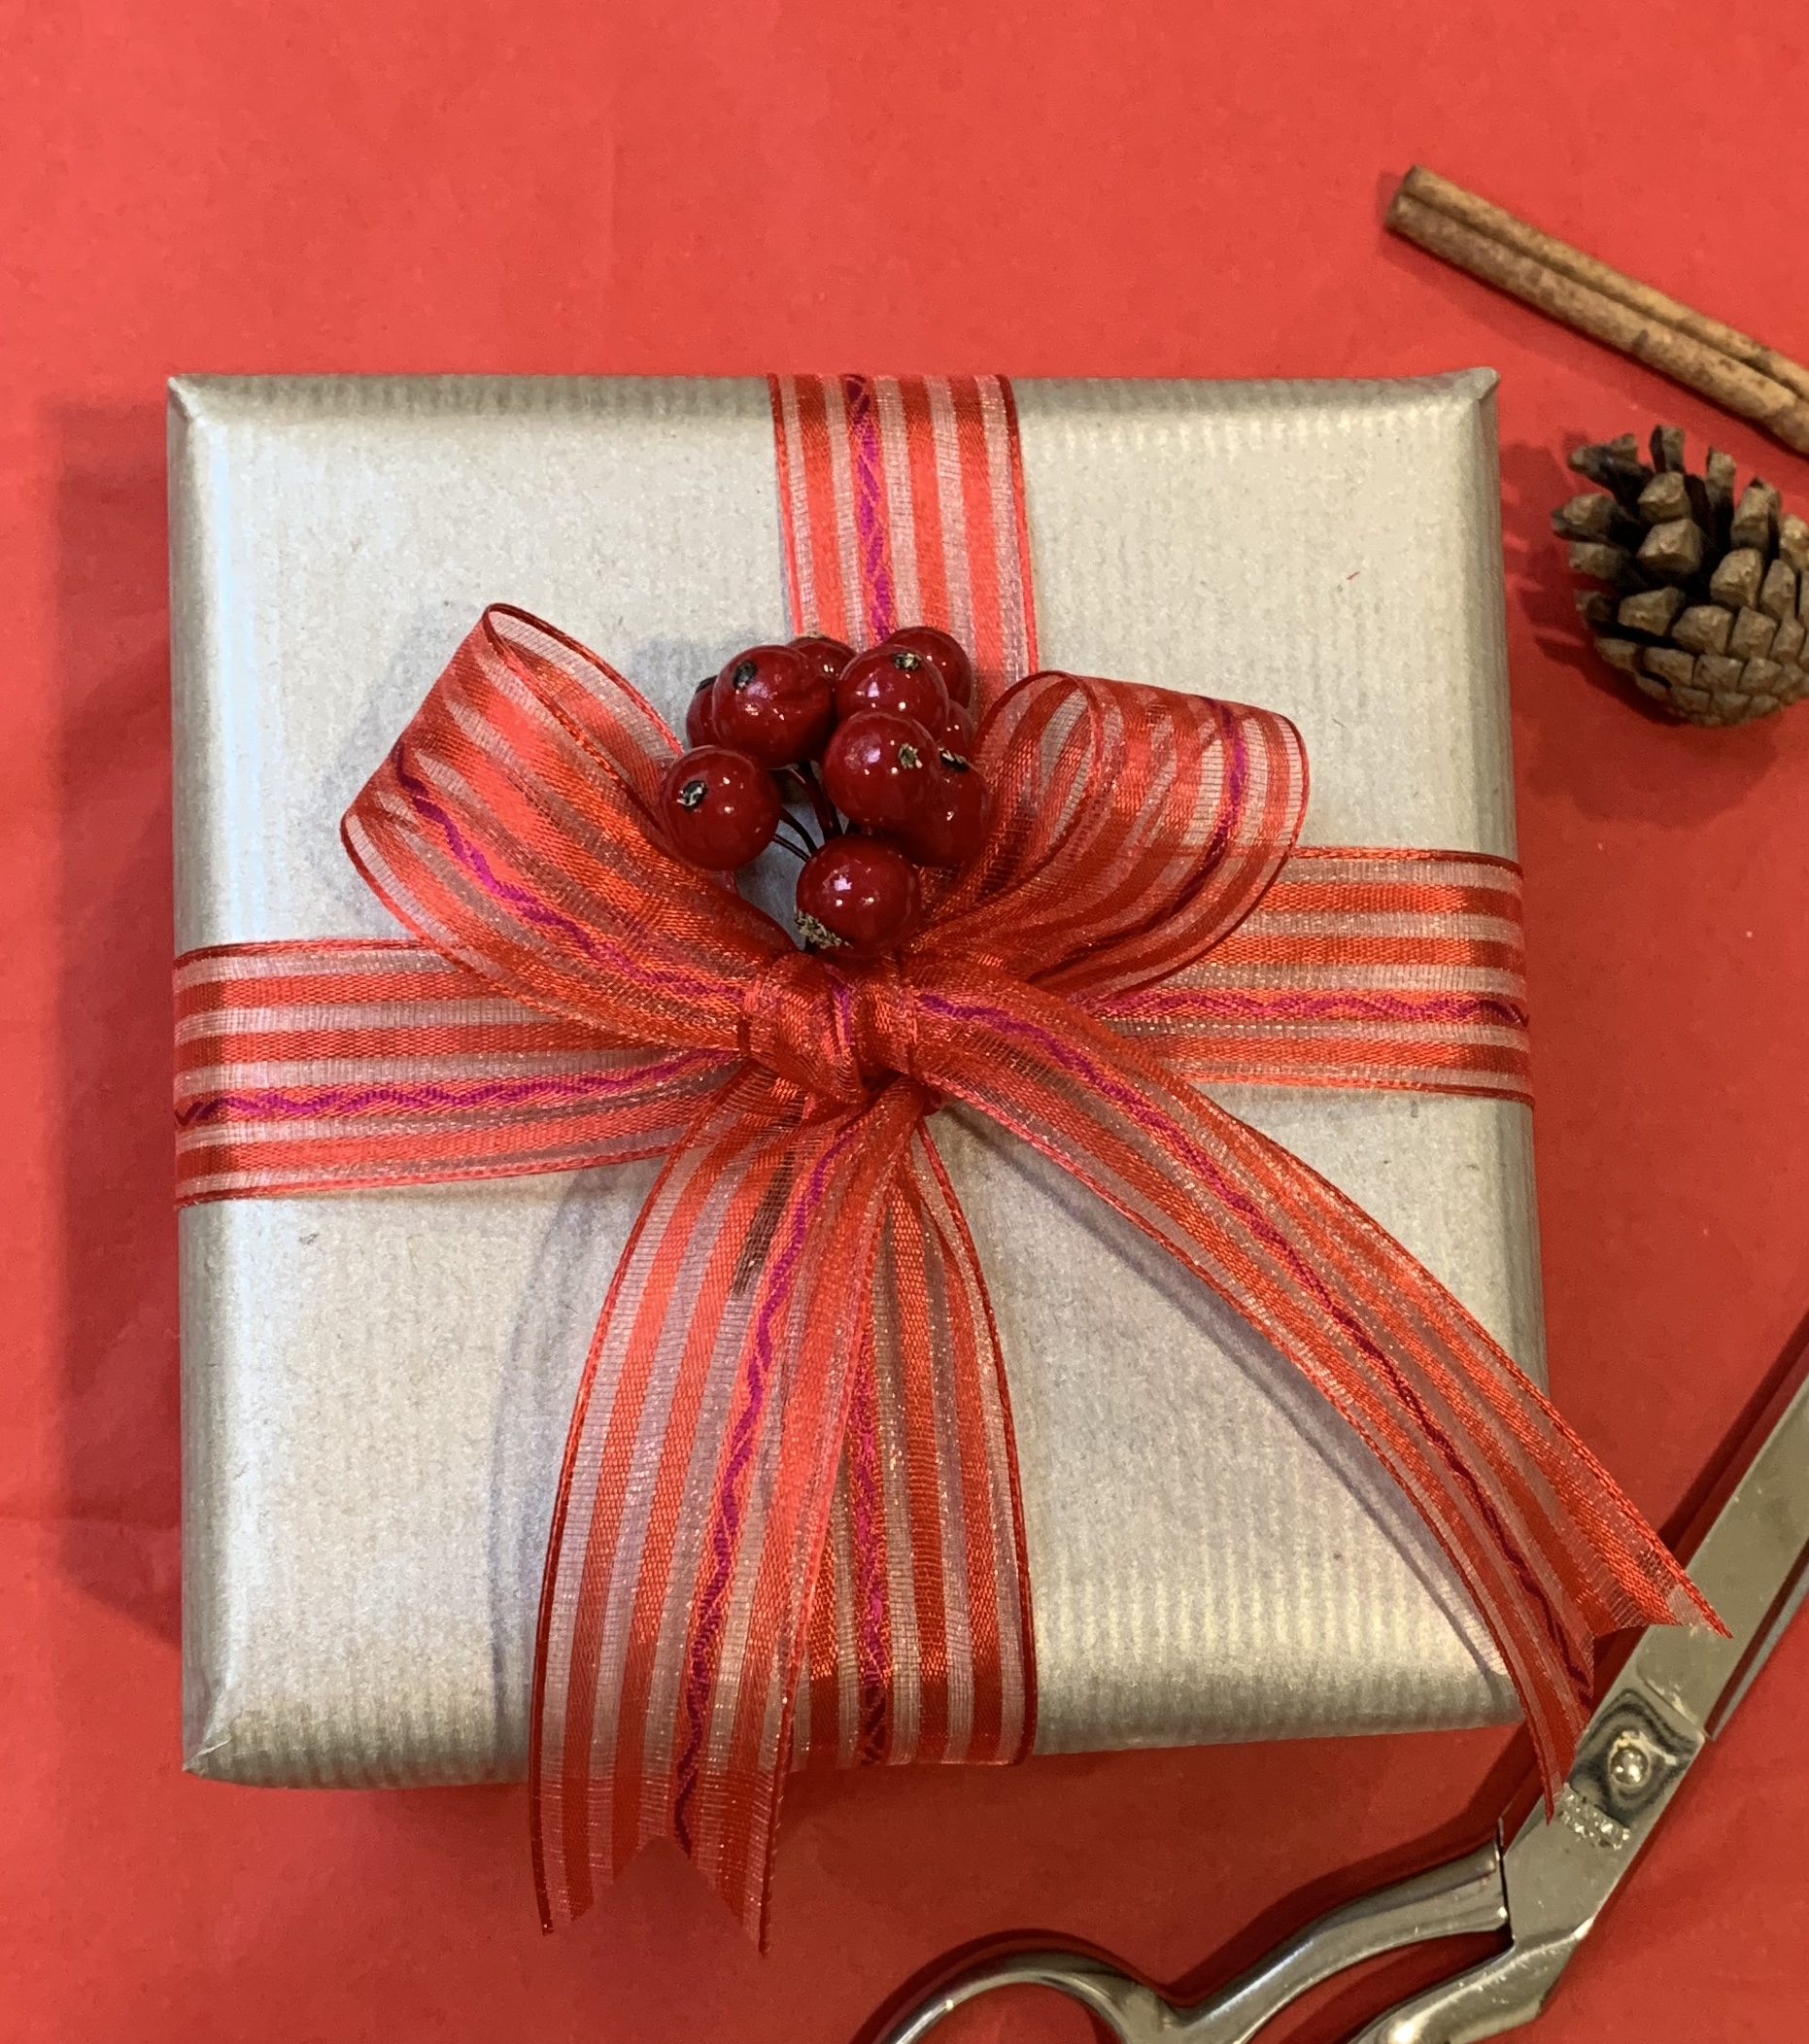 A box wrapped in silver paper with a red ribbon and bow